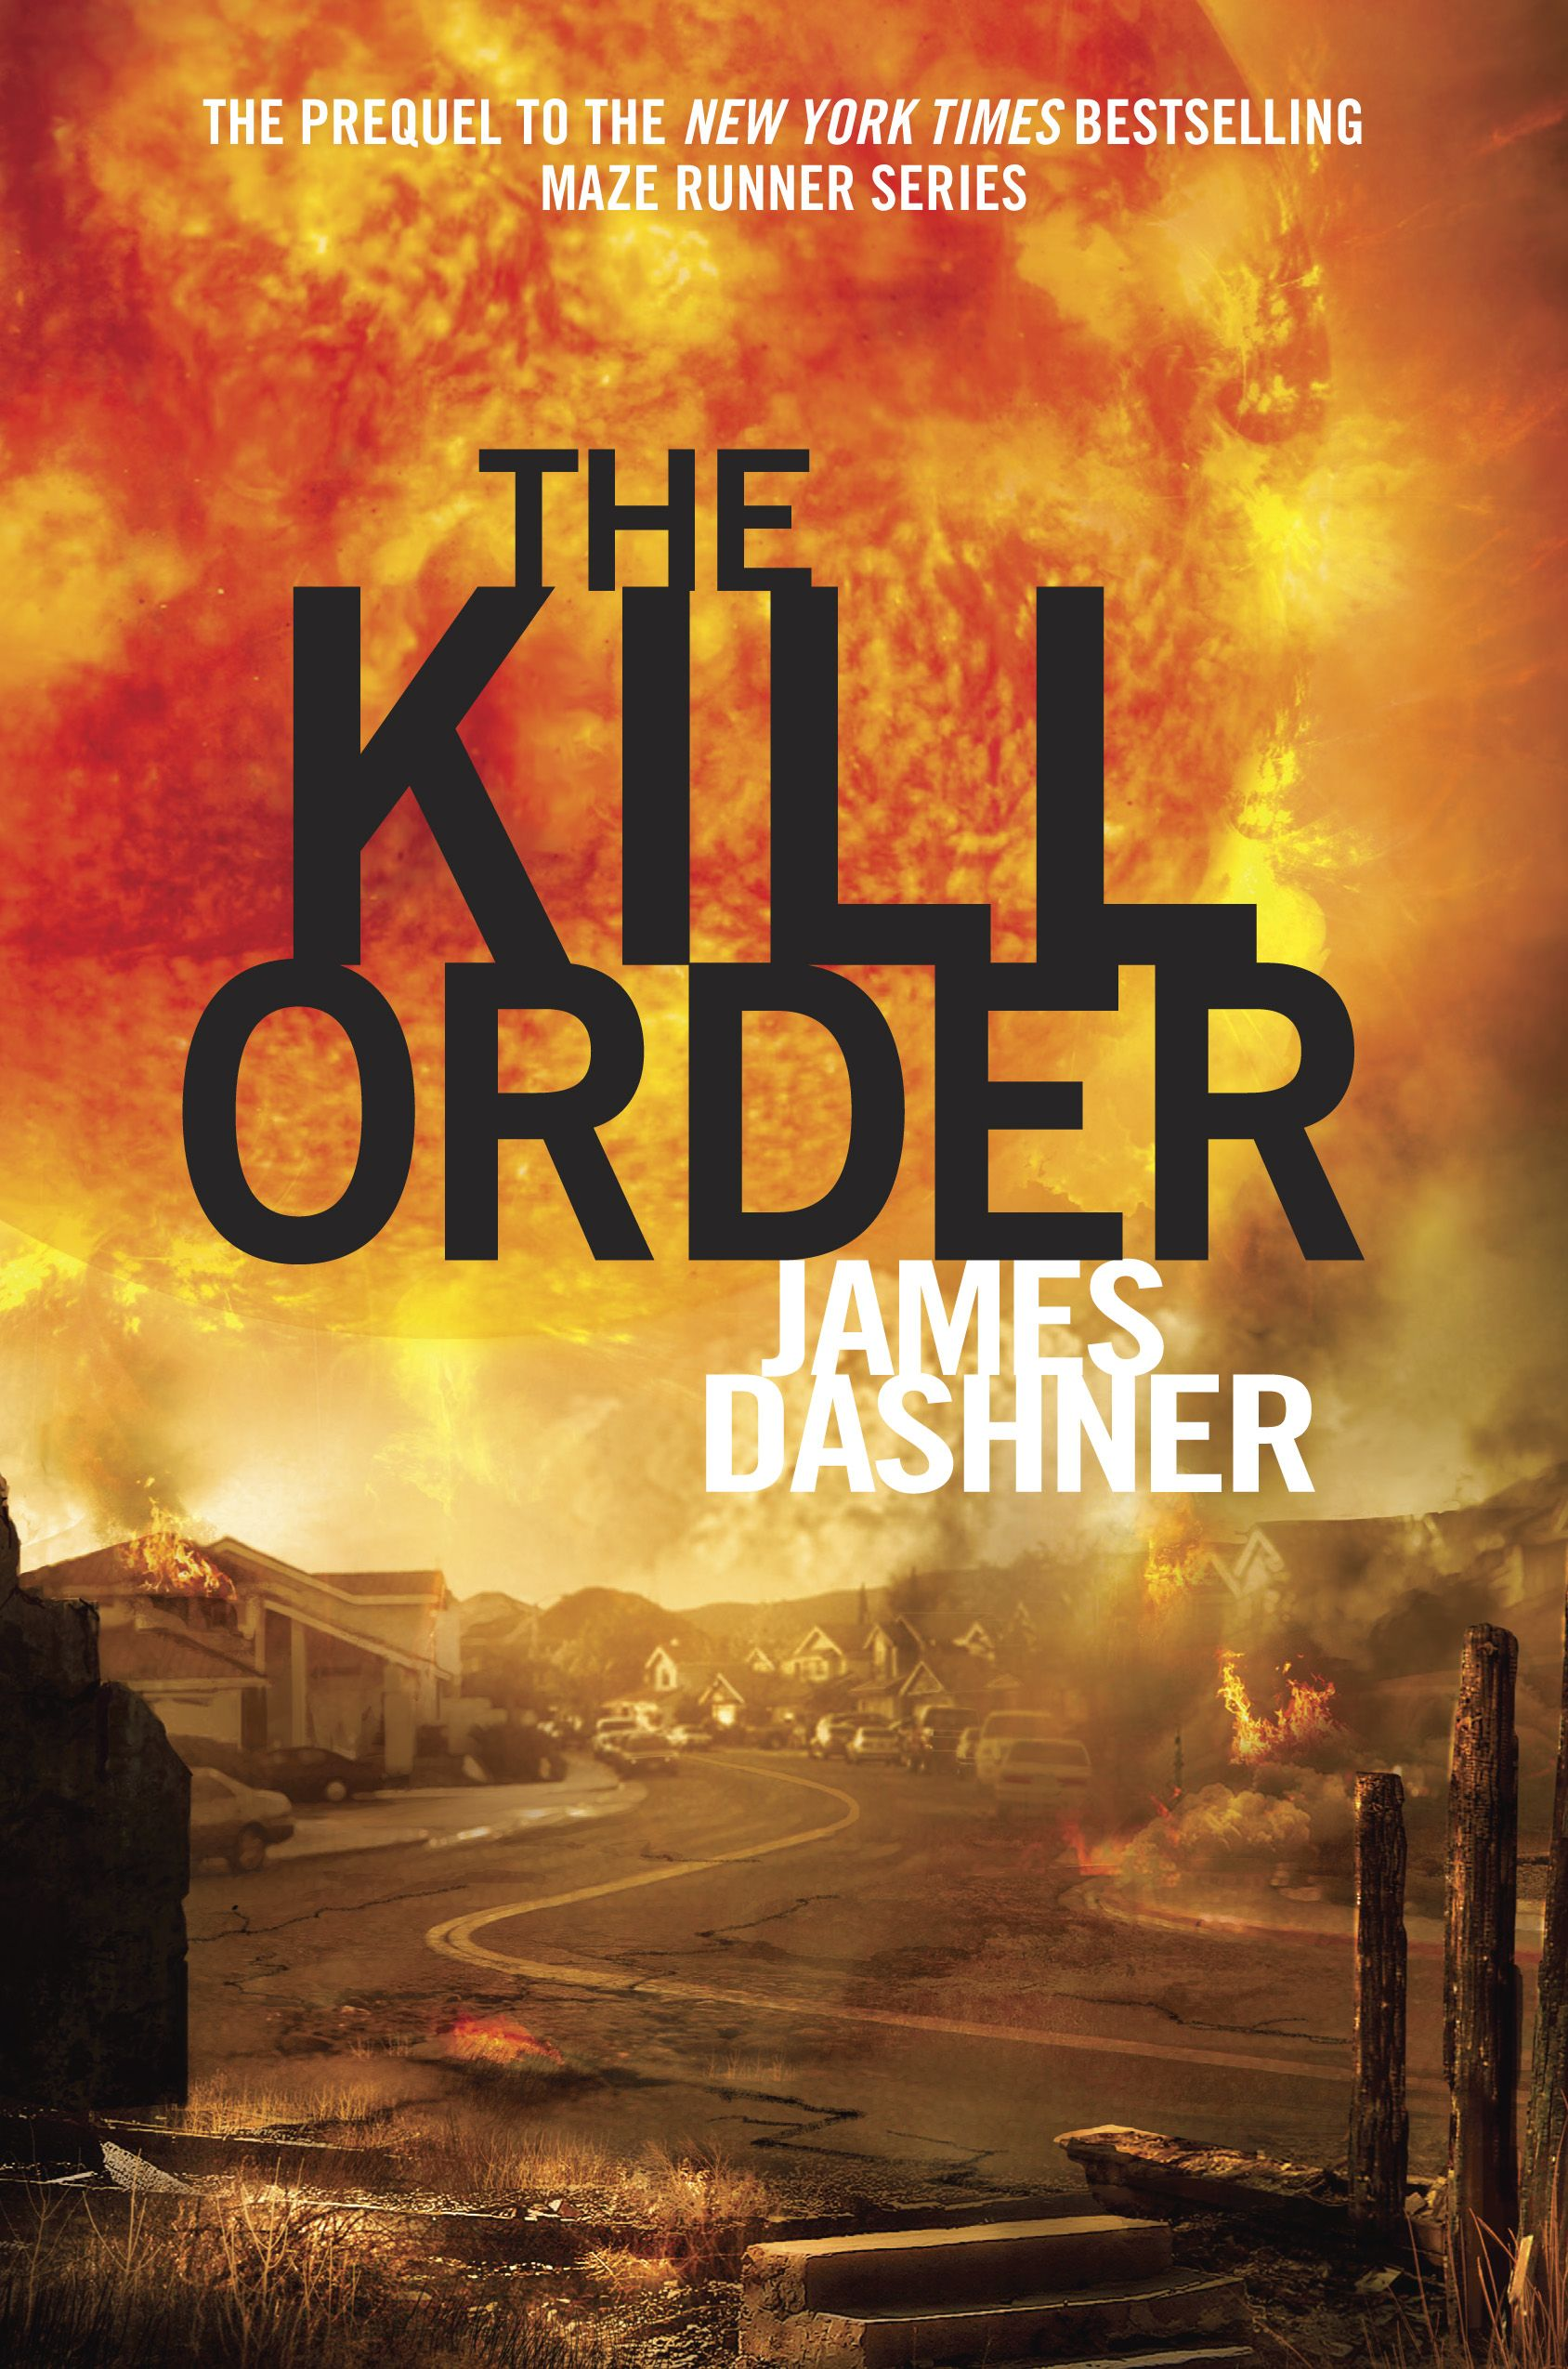 The prequel to THE MAZE RUNNER book 4 series by James Dashner - cover just  revealed today! | James dashner books, James dashner, Maze runner series